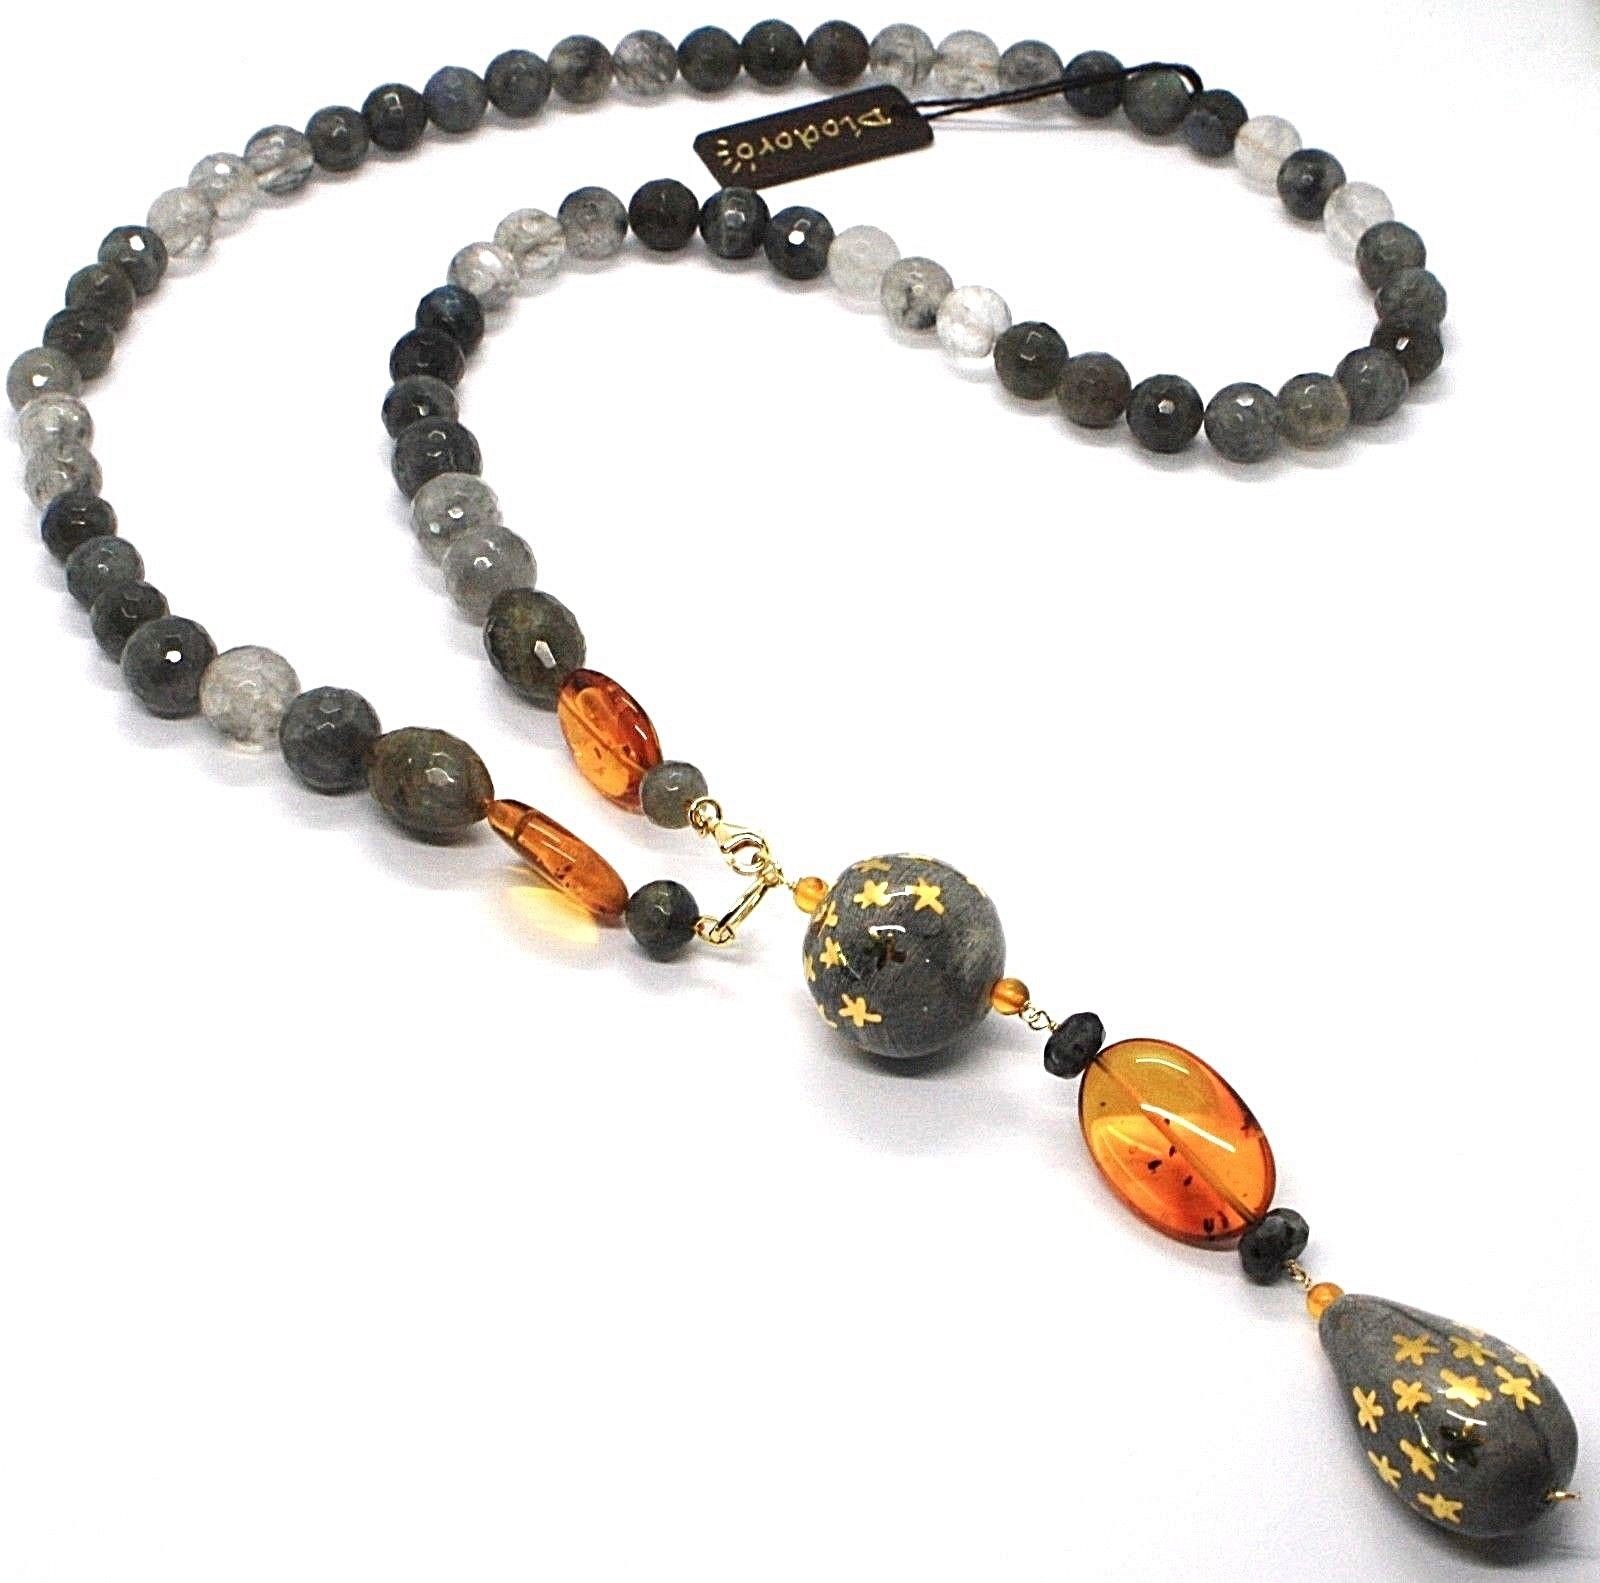 18K YELLOW GOLD LONG NECKLACE AMBER LABRADORITE QUARTZ POTTERY HAND PAINTED STAR